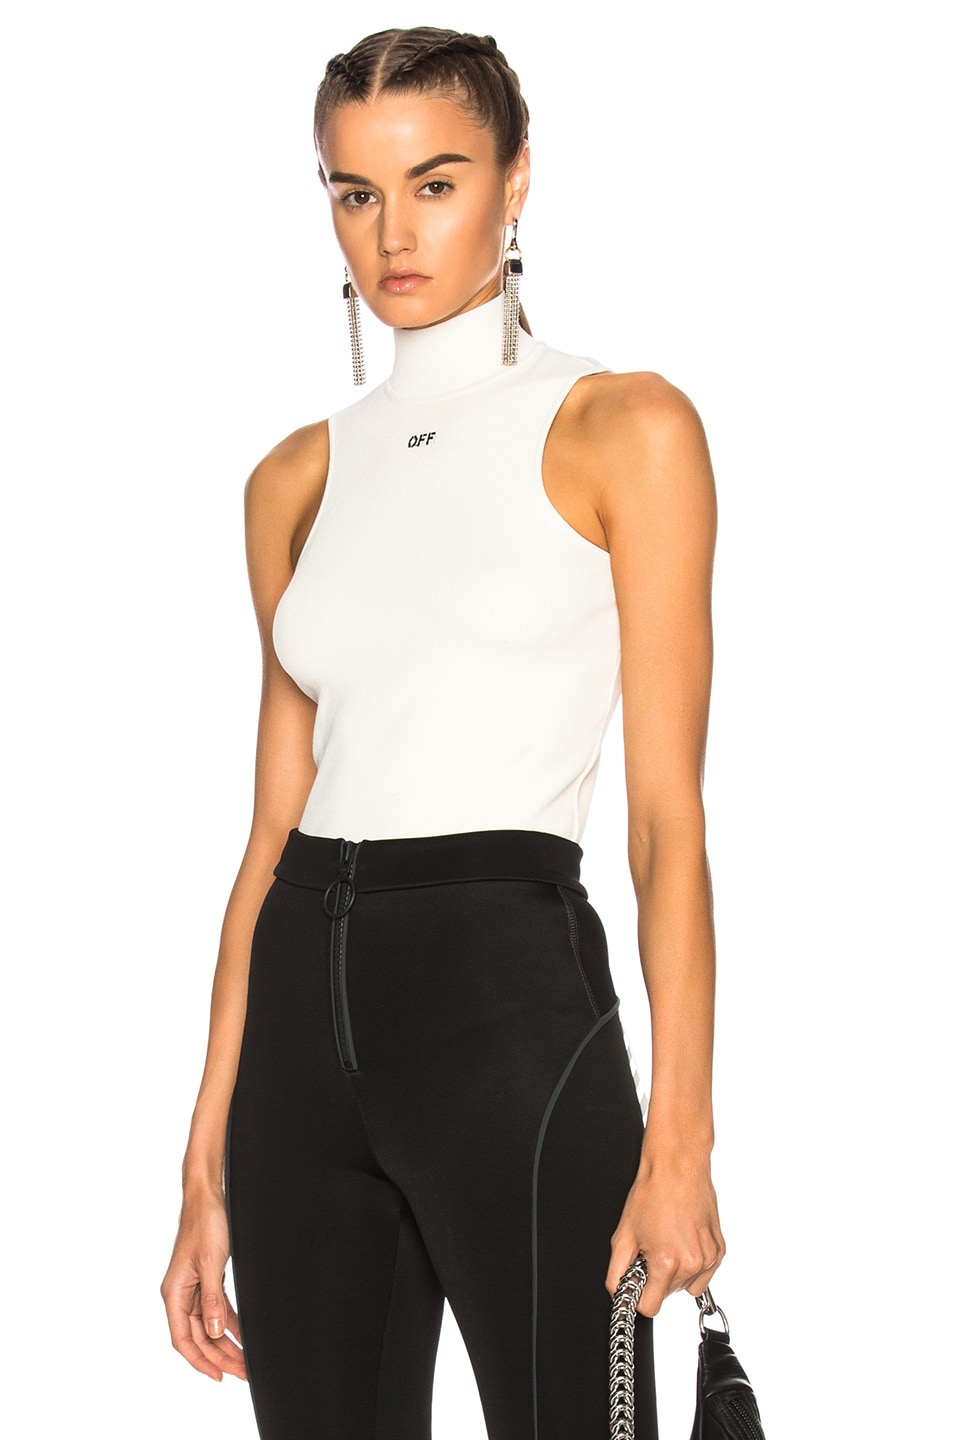 Knit White Inamp; Off Cropped Top BlackFwrd hrsQdCtx